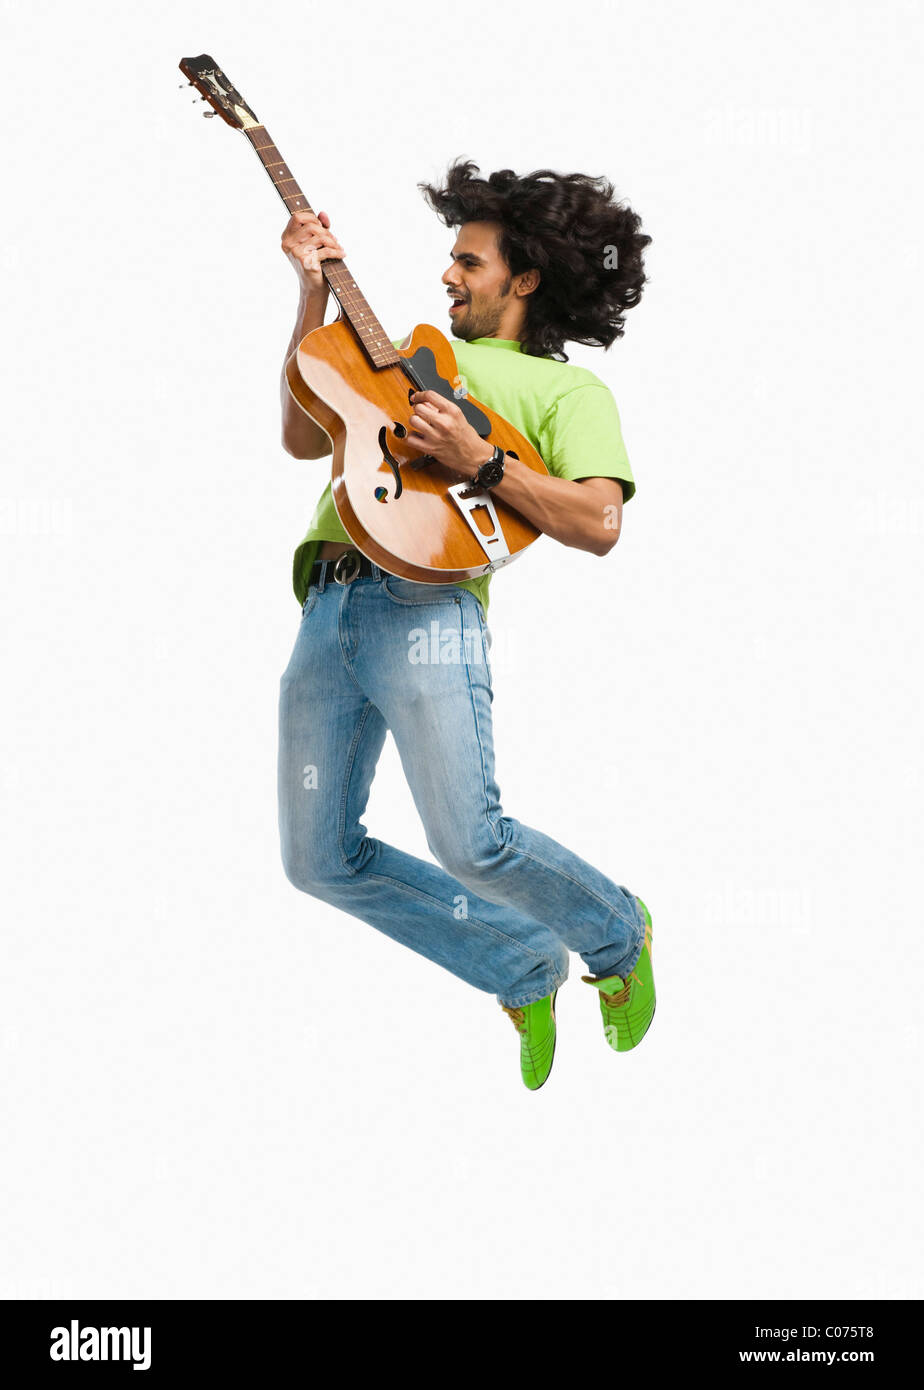 Man jumping in the air while playing a guitar - Stock Image